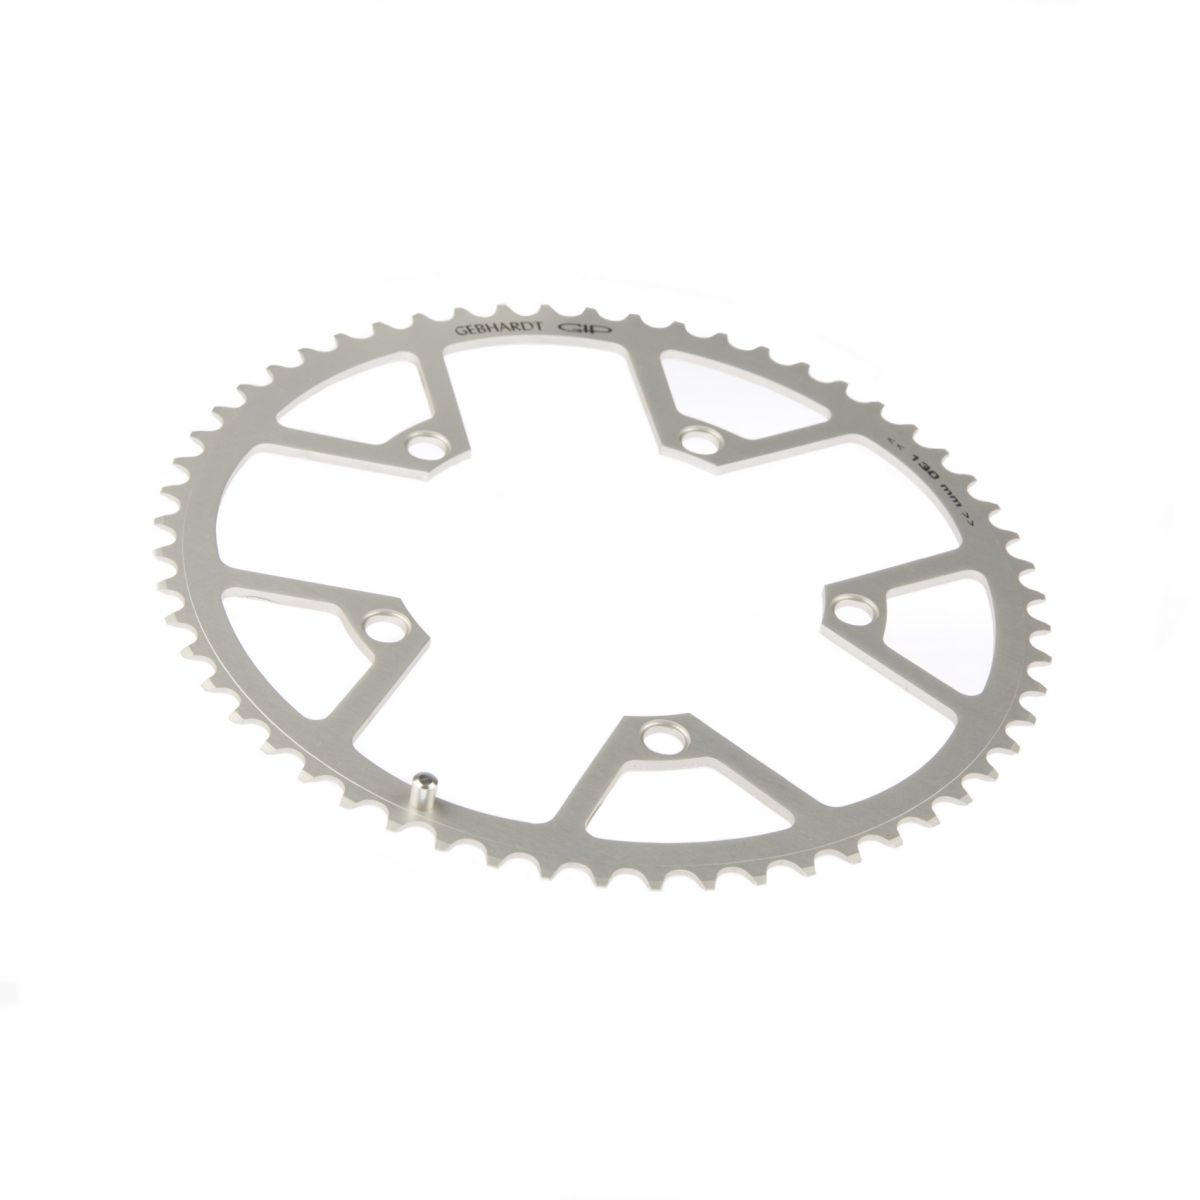 gebhardt chainring classic bcd 130 mm 5hole 53t silver